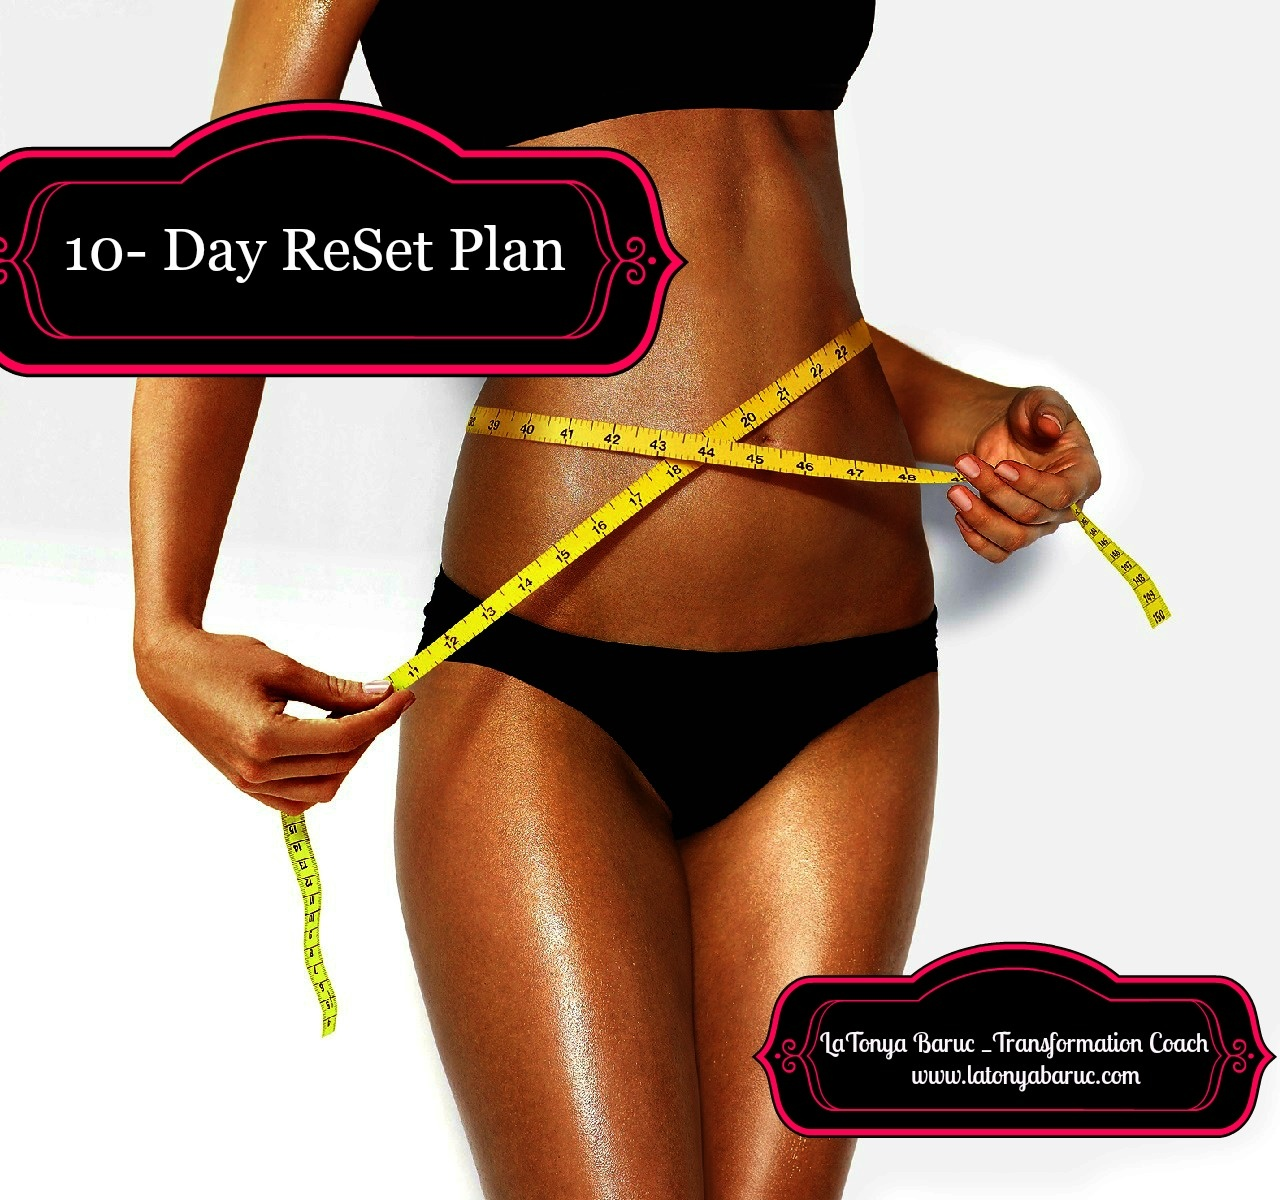 10 -Day ReSet Plan